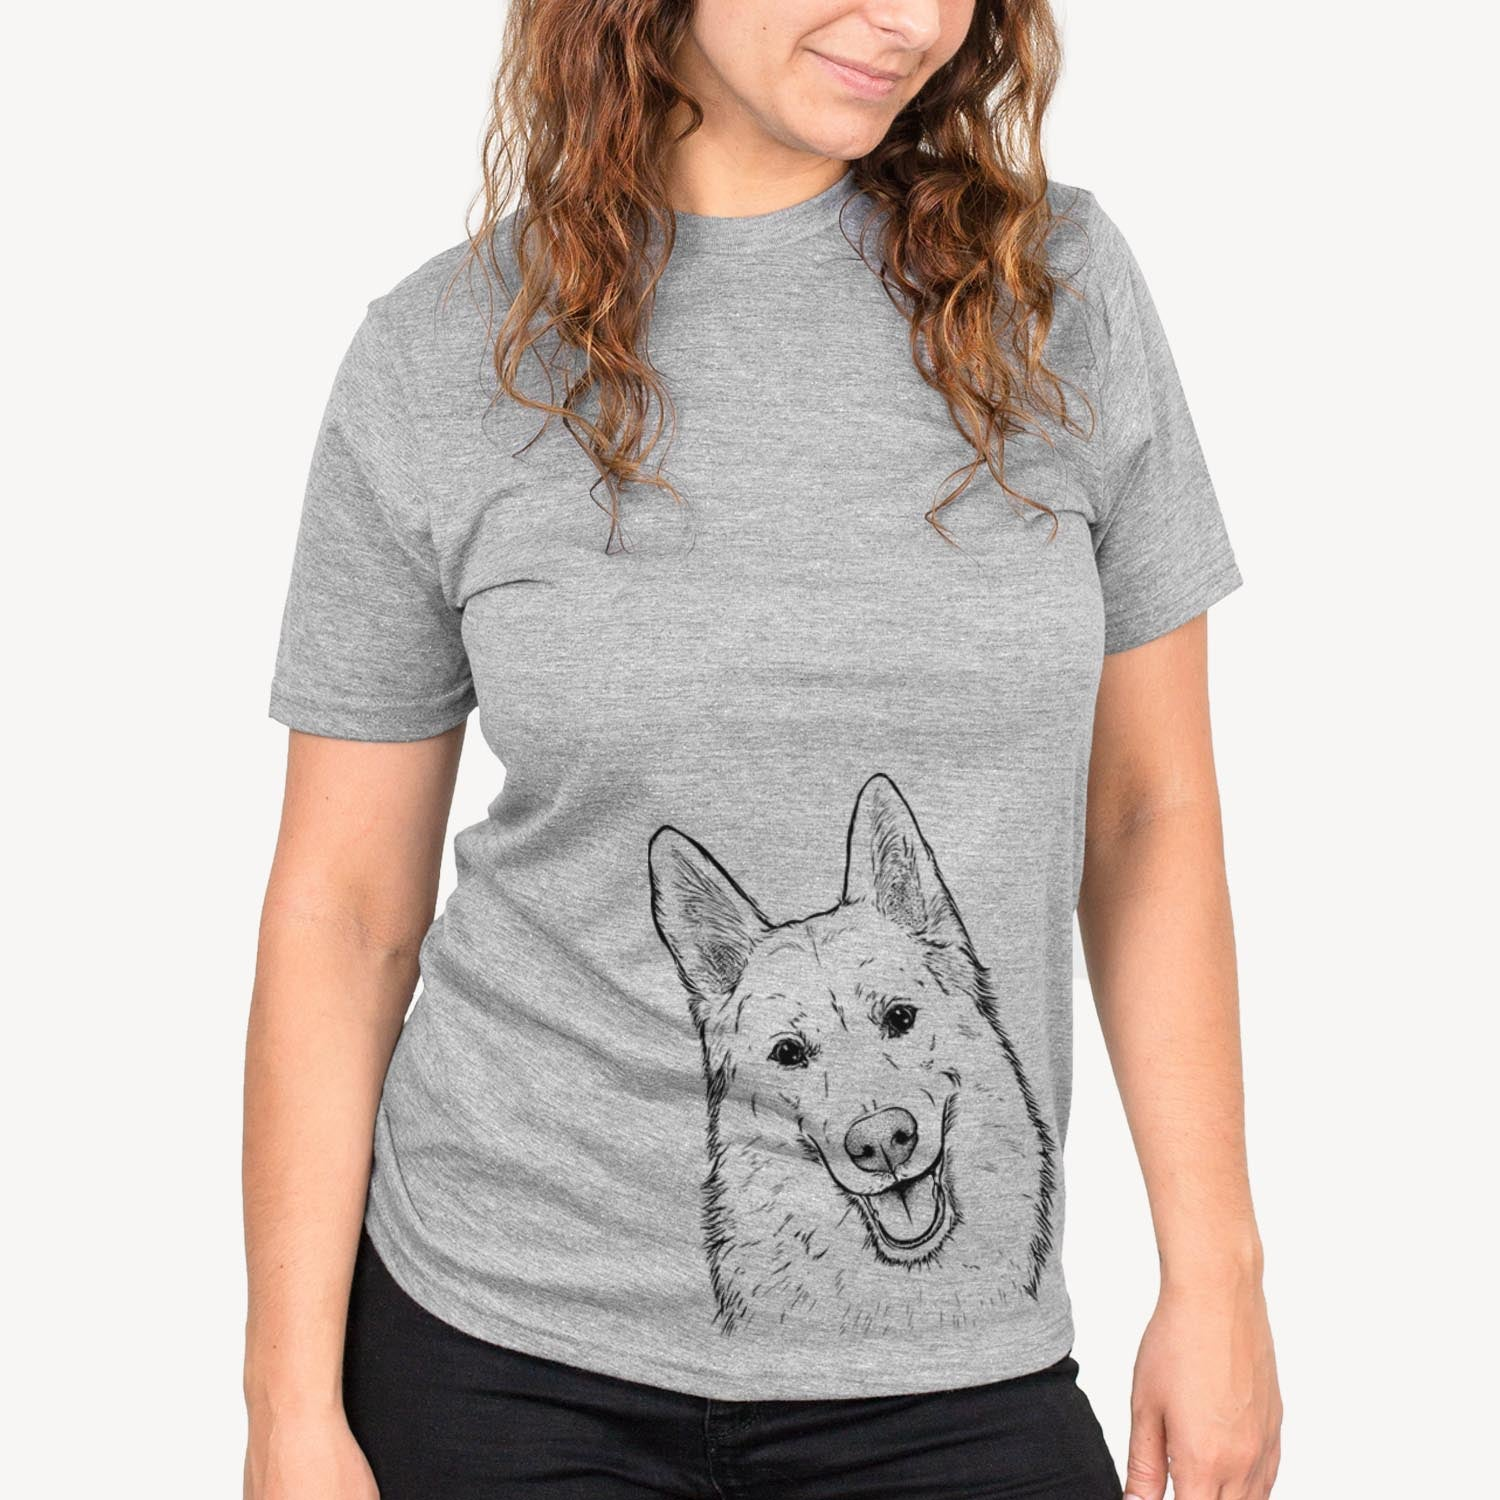 Loki the Husky Shepherd Mix - Unisex Crewneck